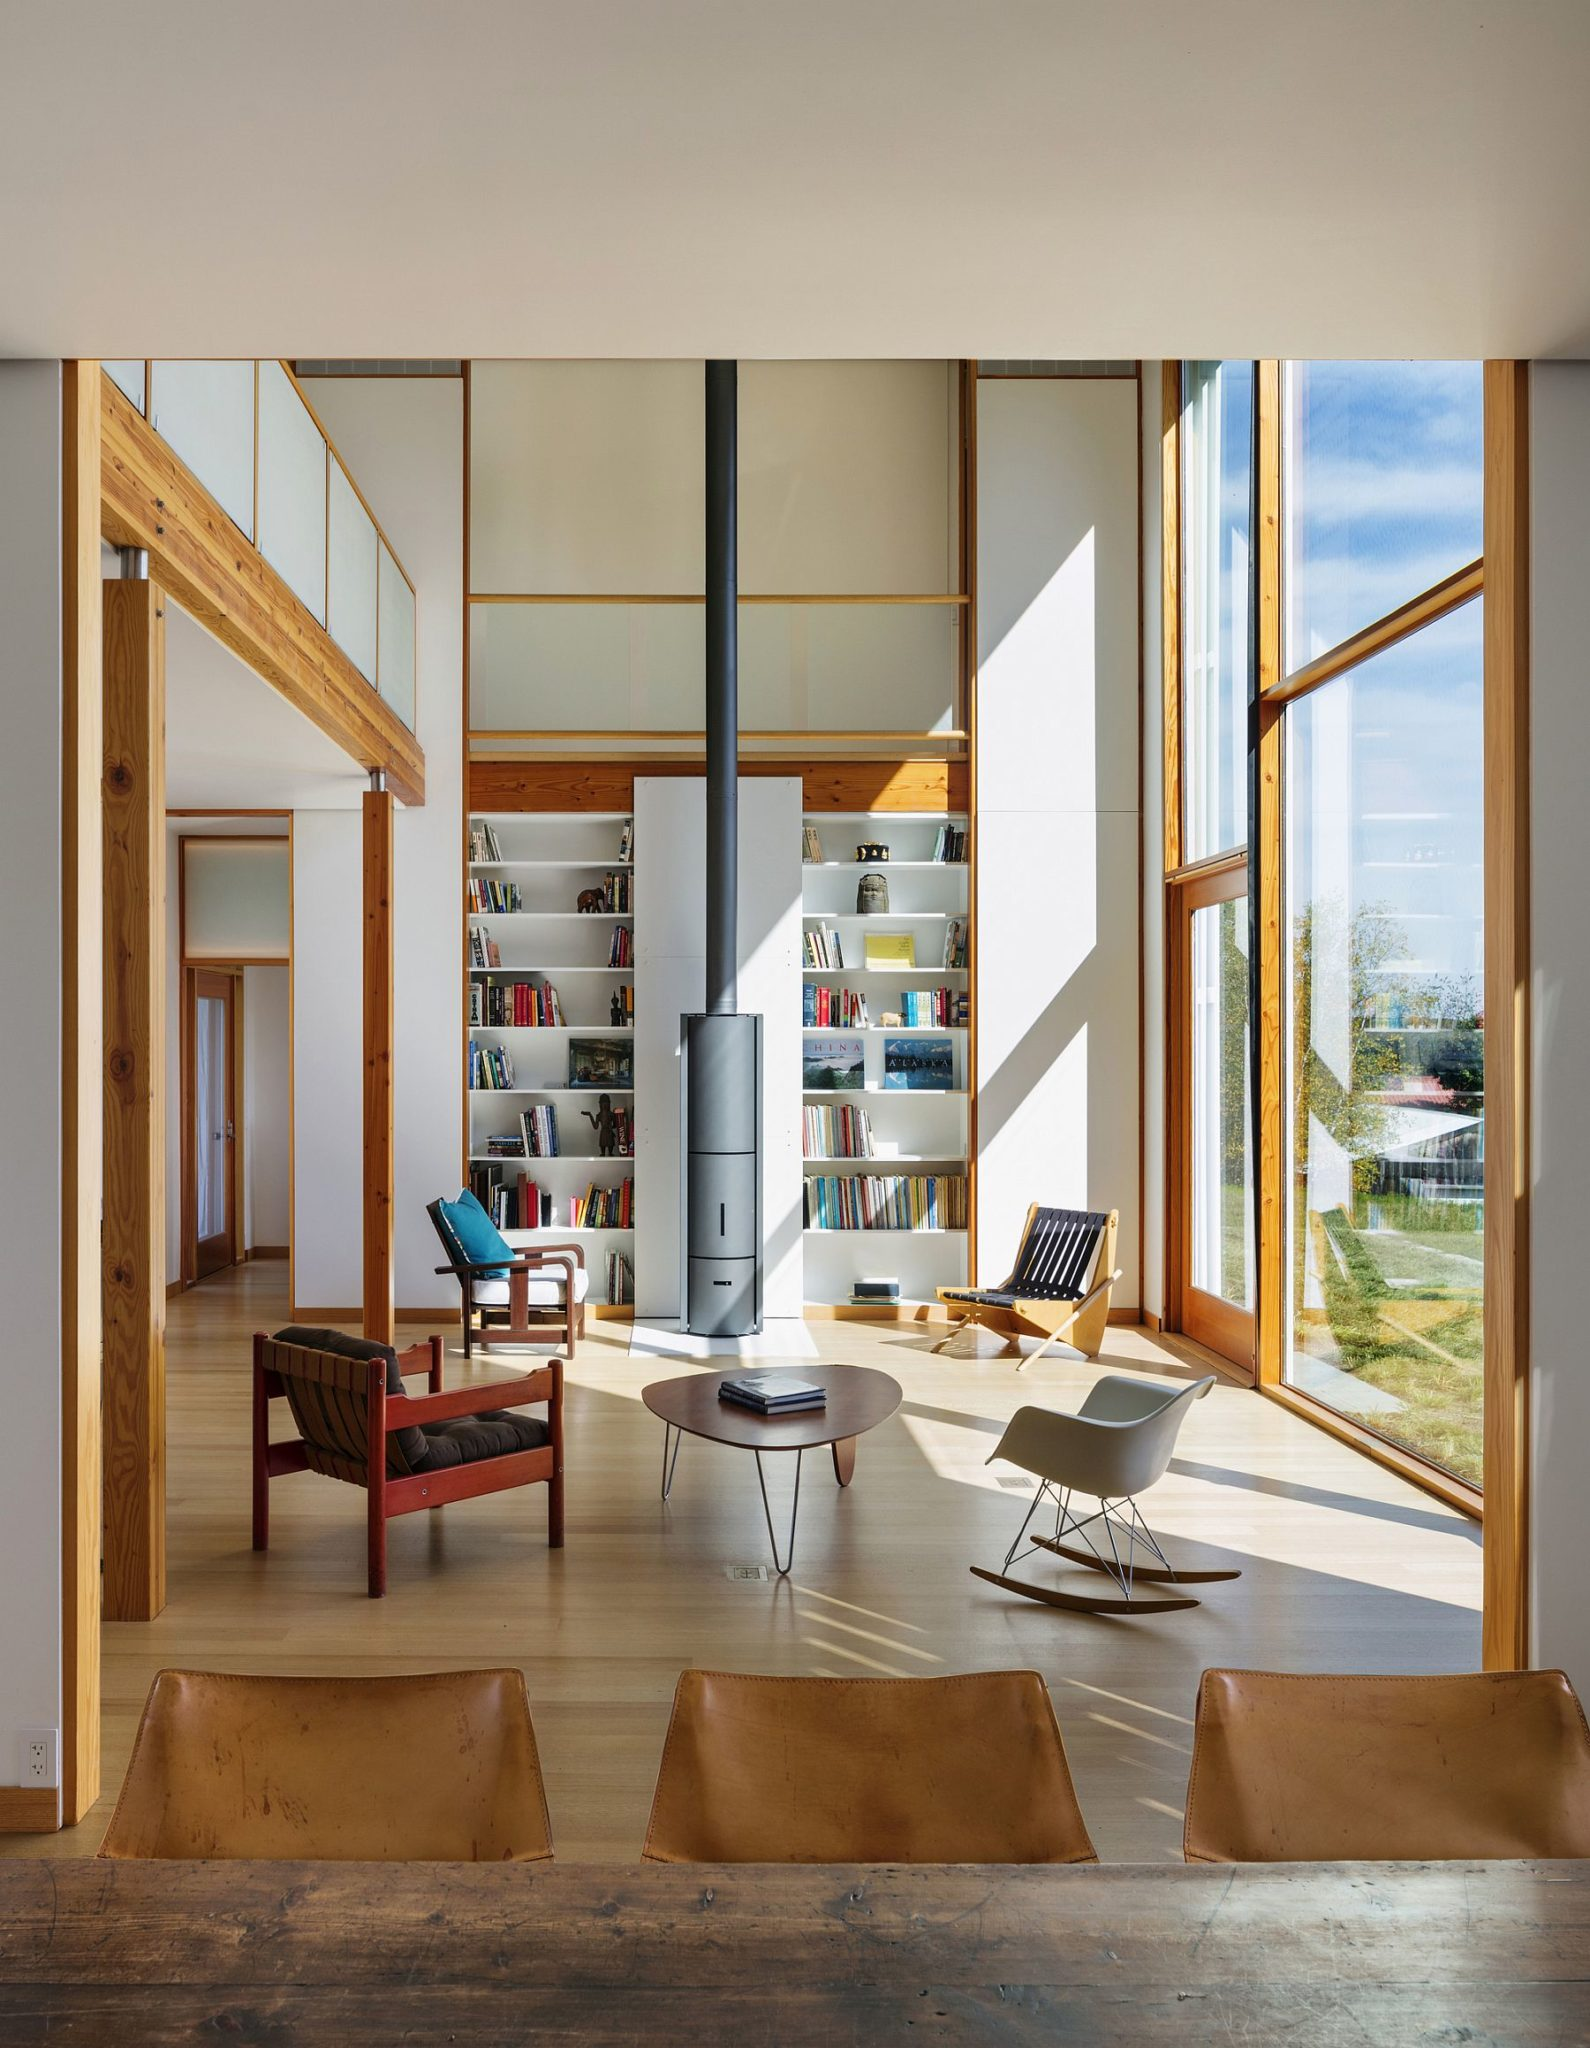 Natural sunlight in winter heats the living area